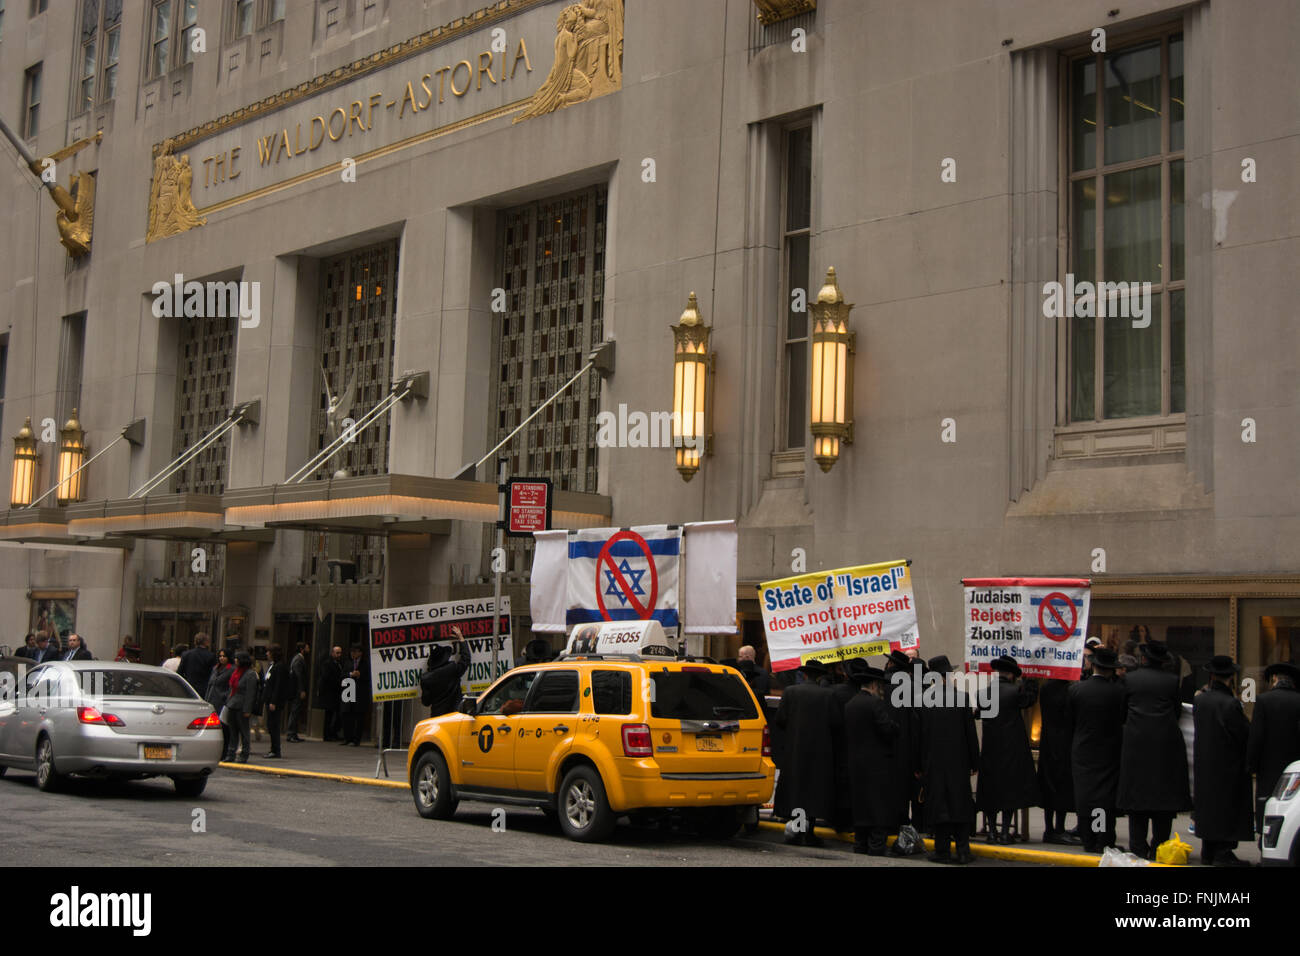 New York City, USA. 15th March 2016. Anti-Zionist Jews and pro-Palestinian activists protest a fund-raising event - Stock Image